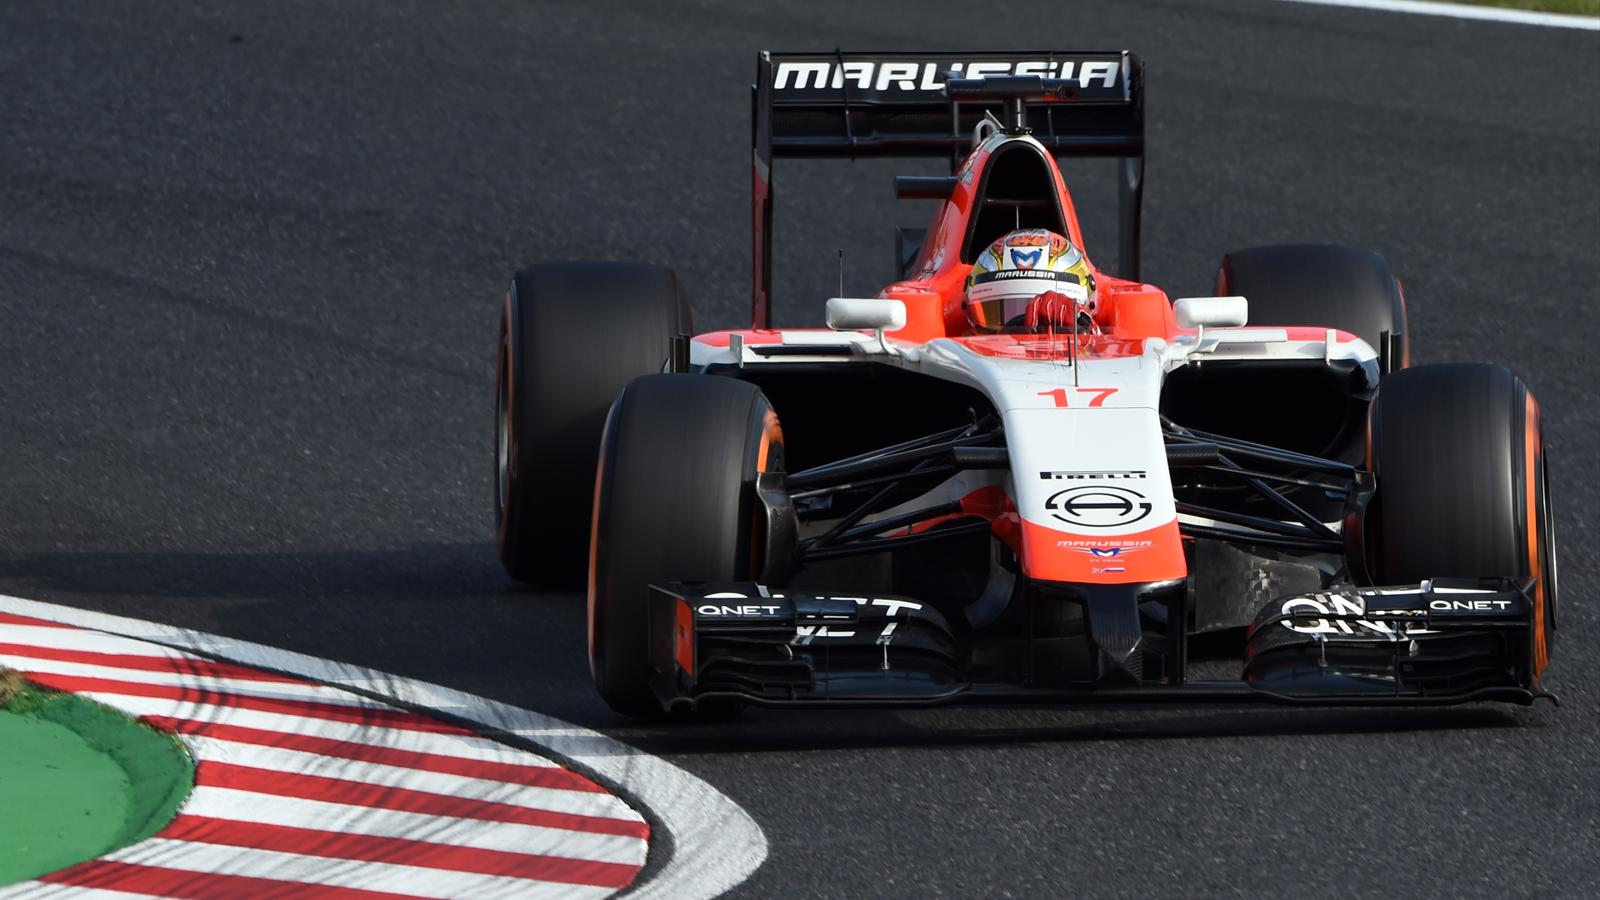 grand prix du japon 2014 accident jules bianchi marussia alain prost. Black Bedroom Furniture Sets. Home Design Ideas